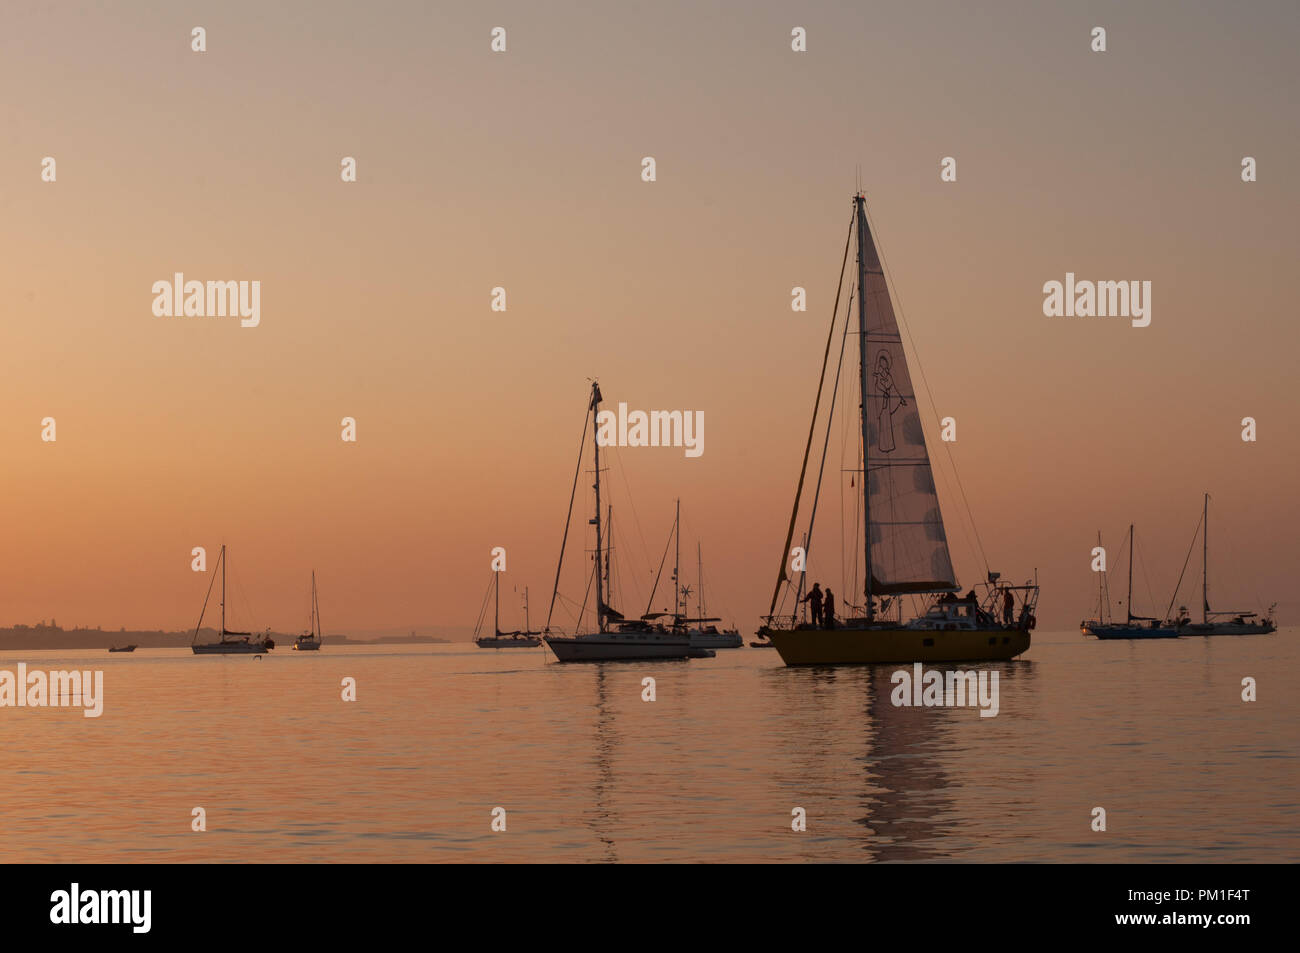 Daybreak at the Ocean with Anchored Sailing Yachts and Boats - Stock Image